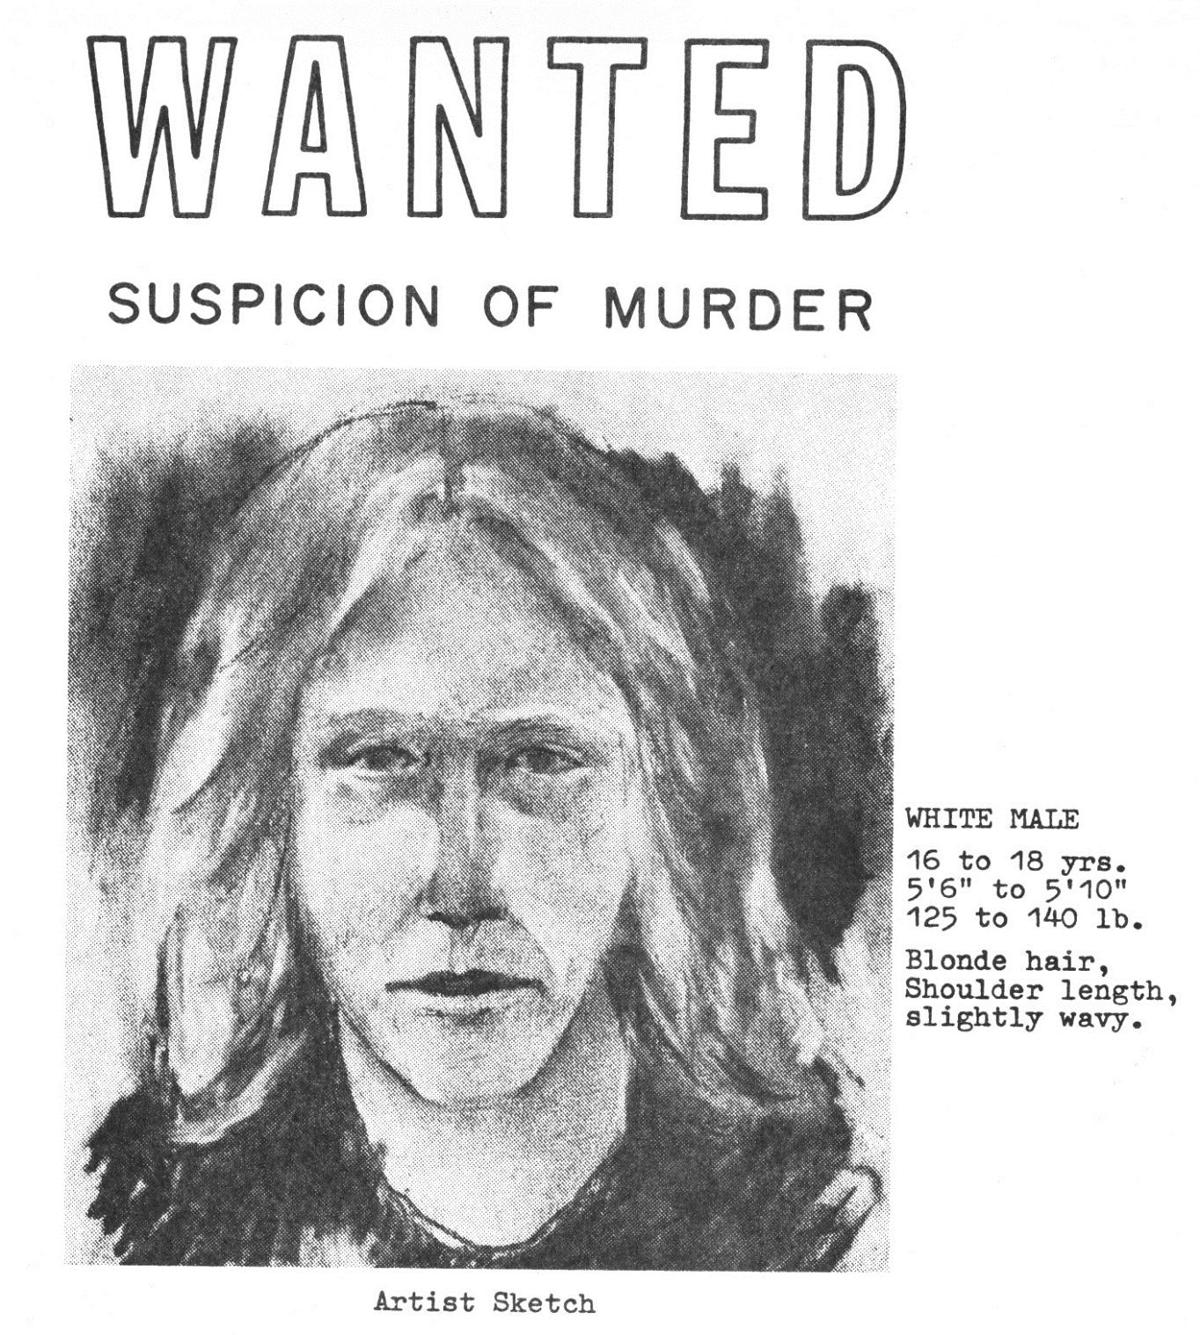 082815ho-wanted-poster